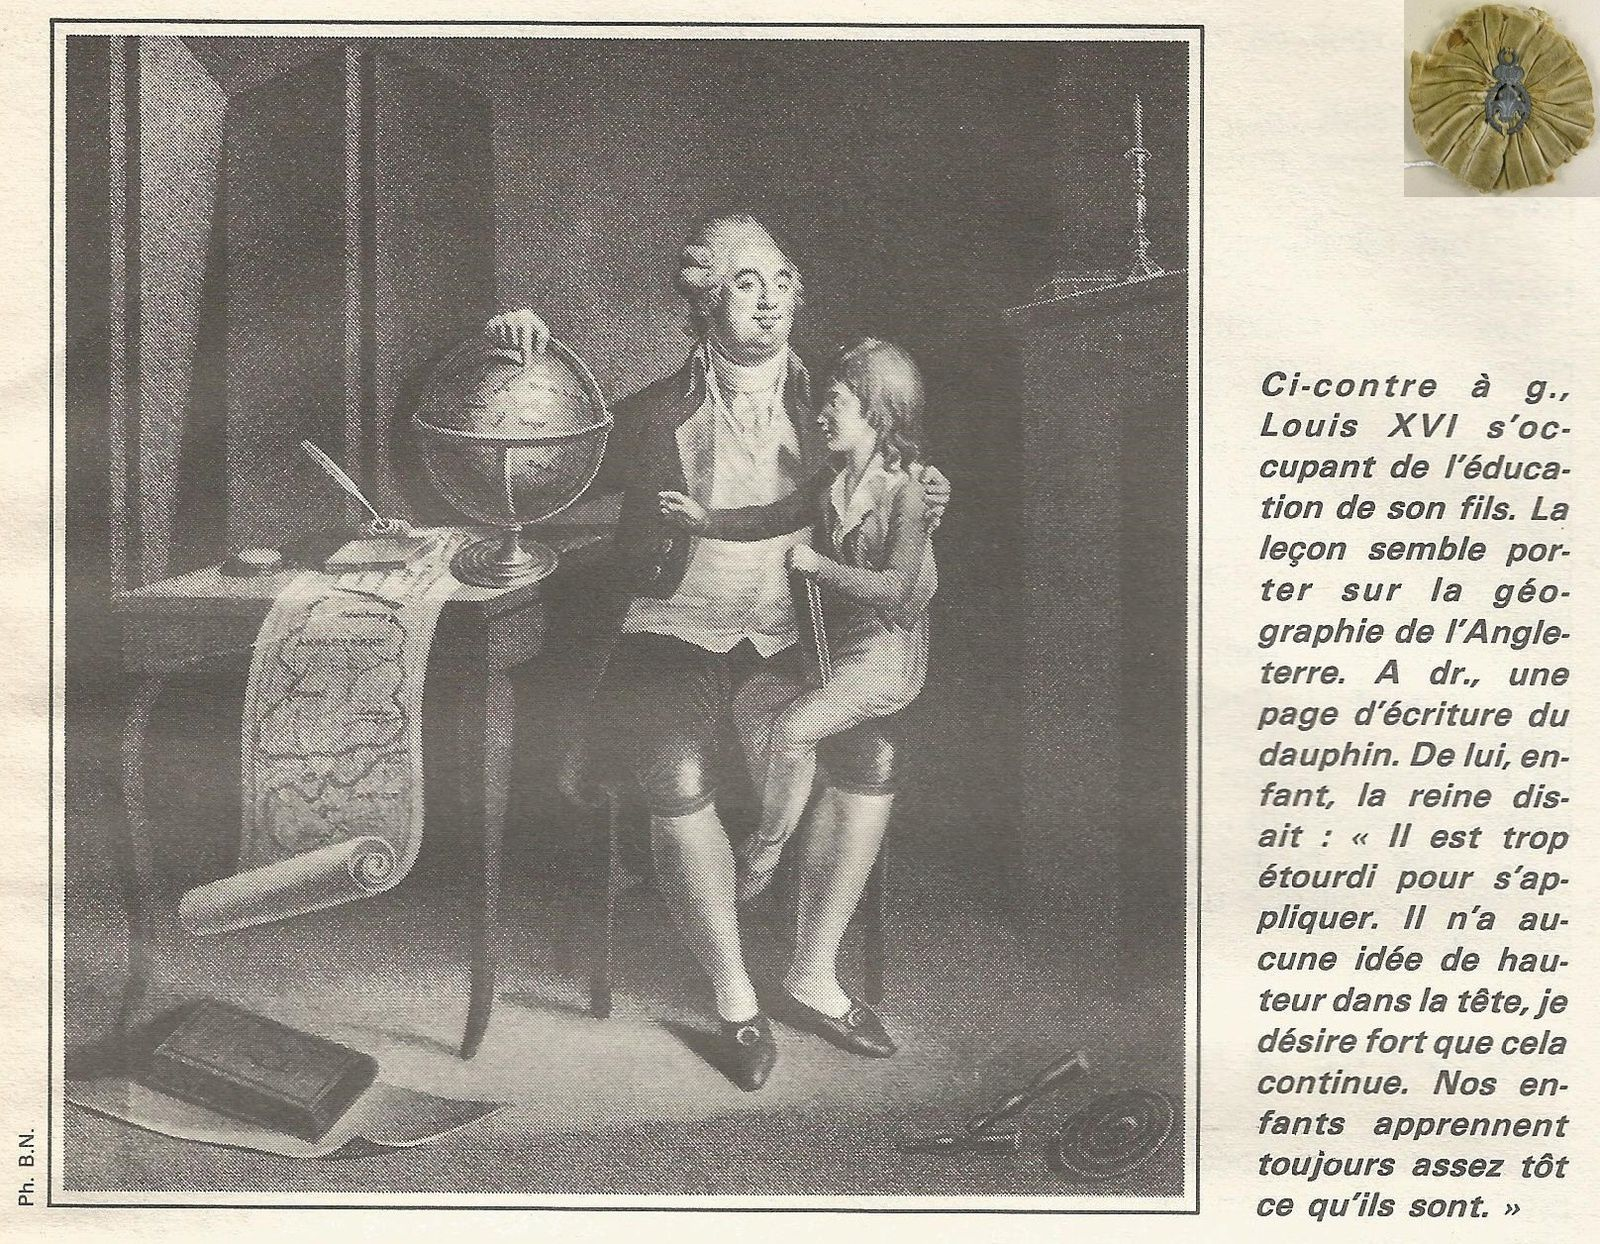 LOUIS XVI S'OCCUPANT DE L'ÉDUCATION DE SON FILS